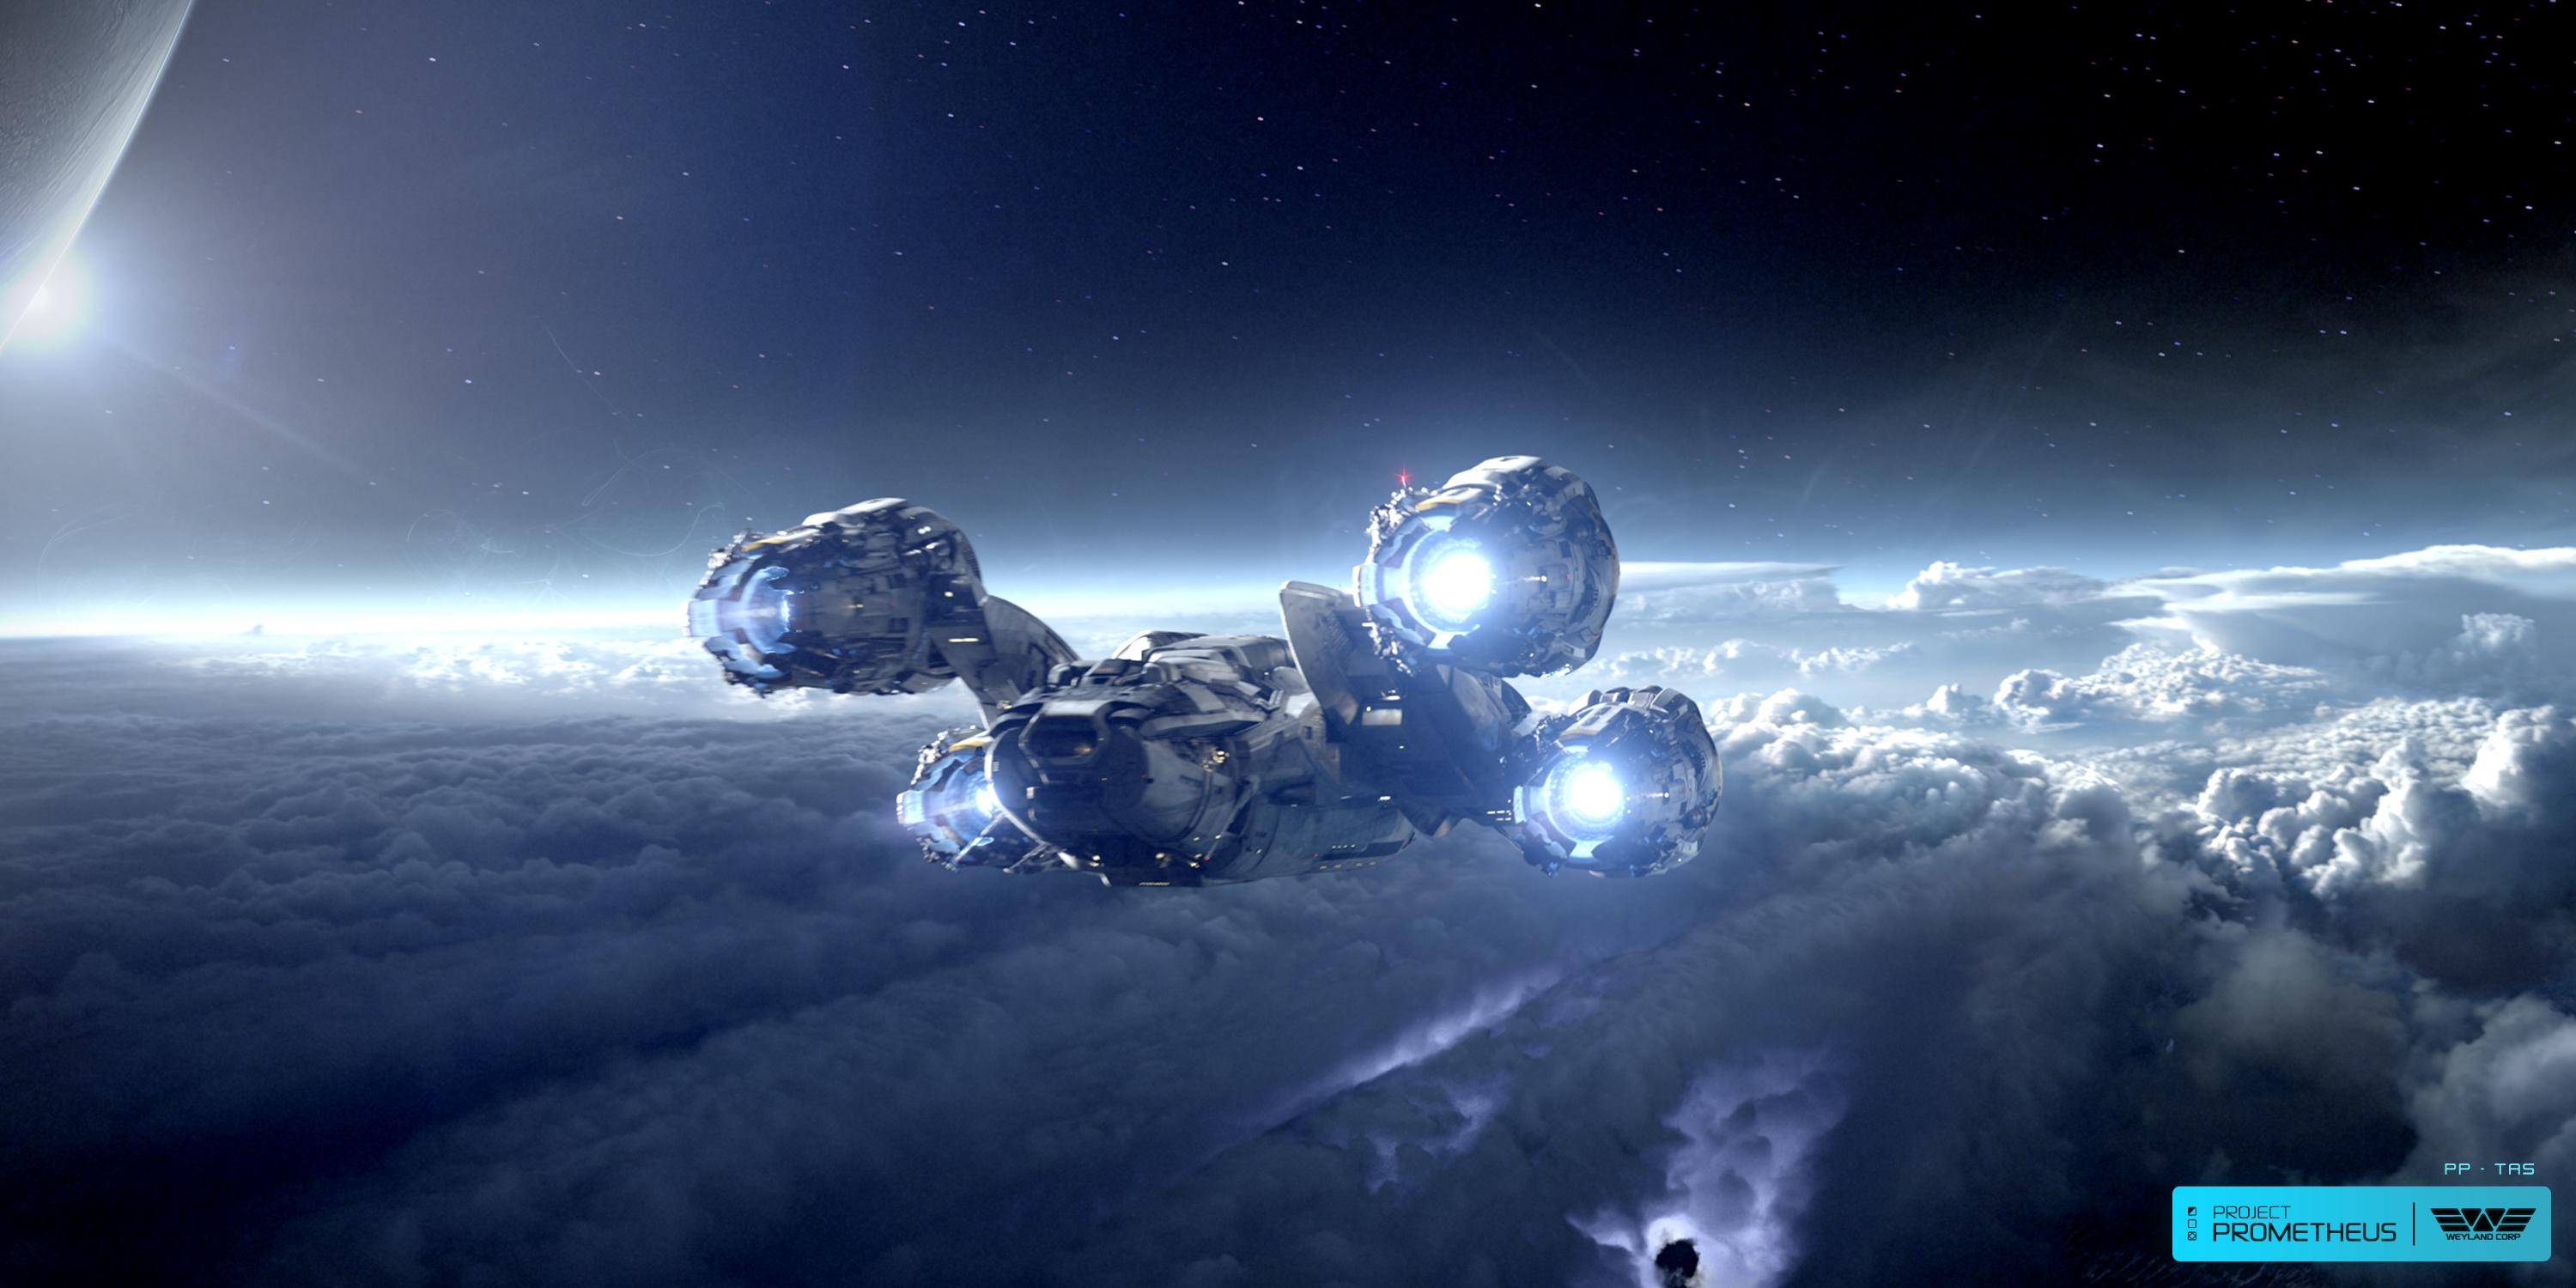 ProjectPrometheus.com - Brought to you by the Weyland Corporation